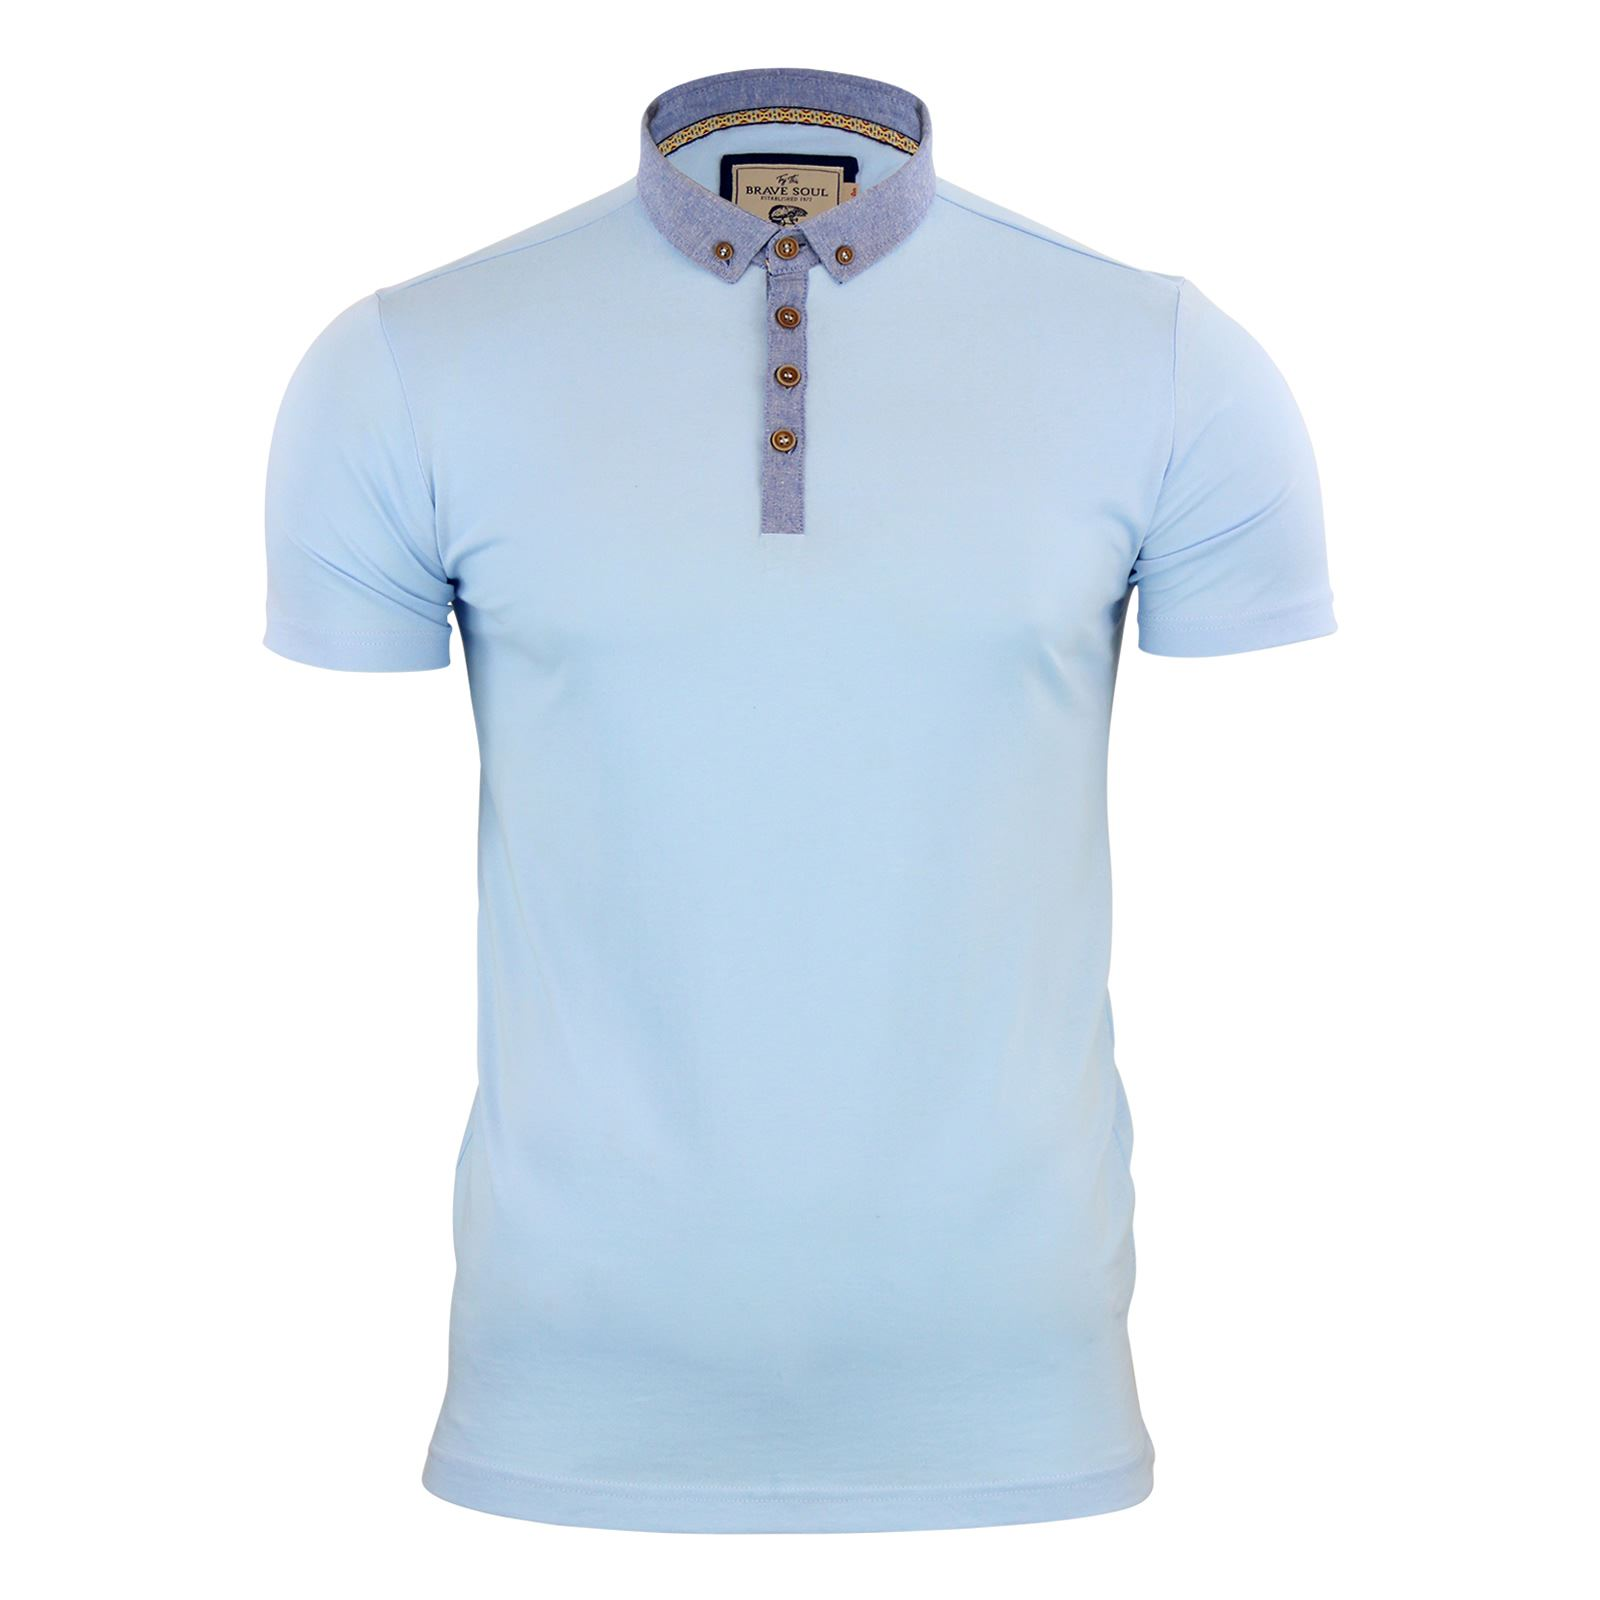 Brave-Soul-Glover-Mens-Polo-T-Shirt-Cotton-Collared-Short-Sleeve-Casual-Top thumbnail 23